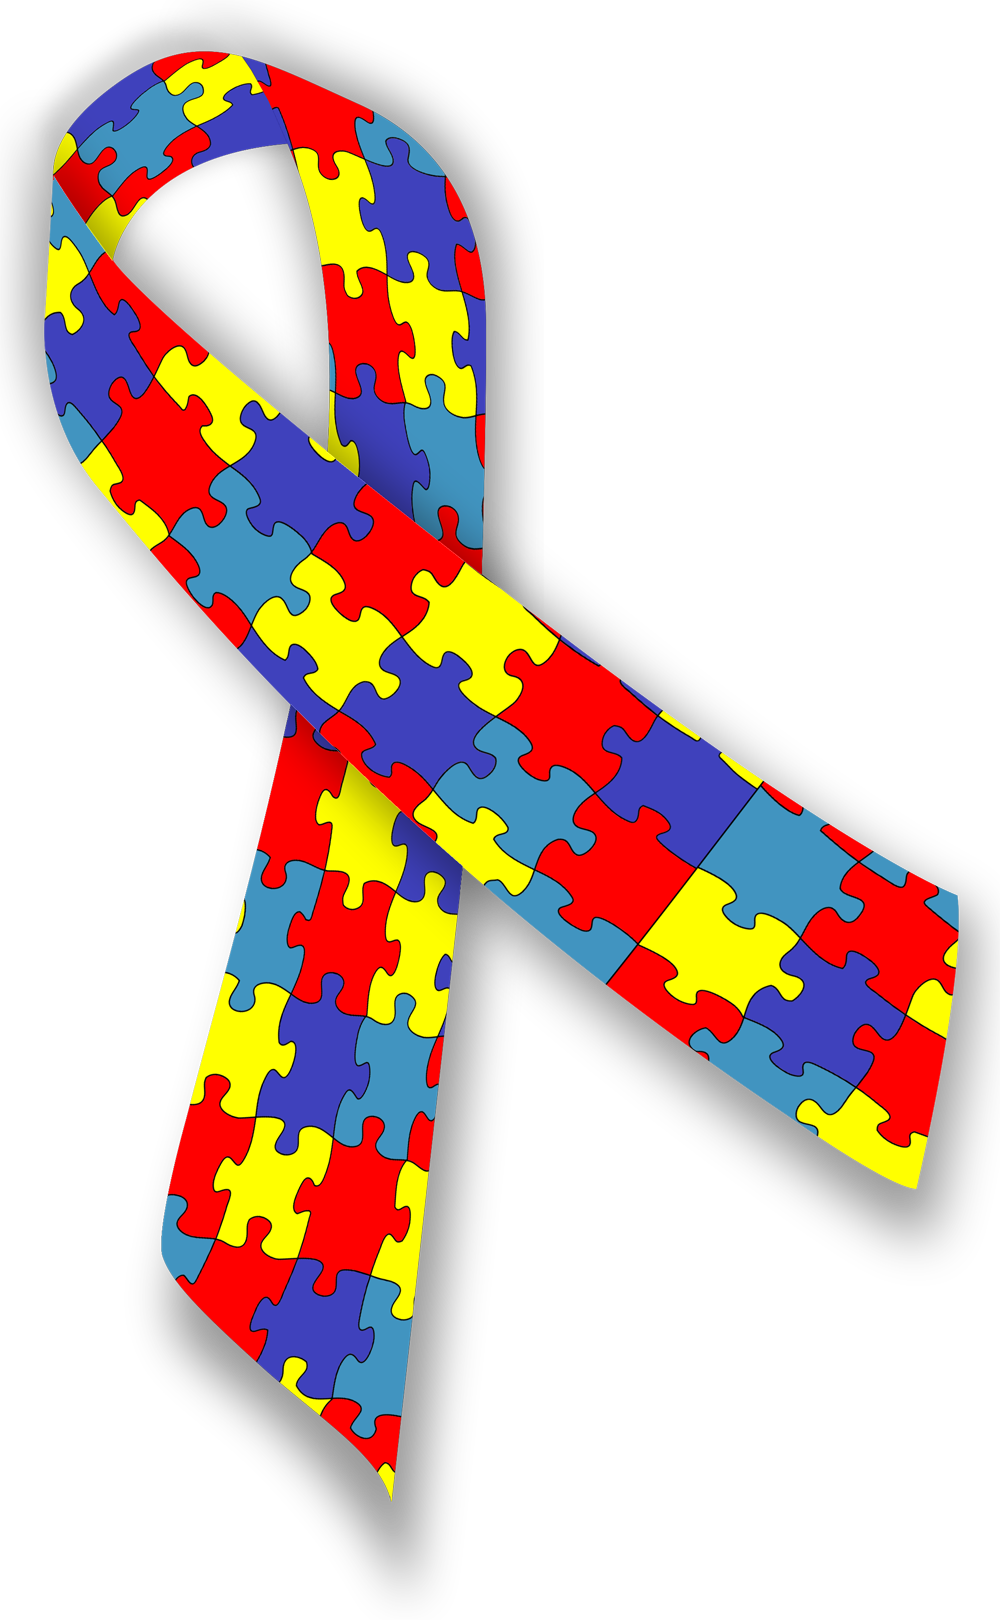 Puzzle clipart intervention. Autism awareness the piece